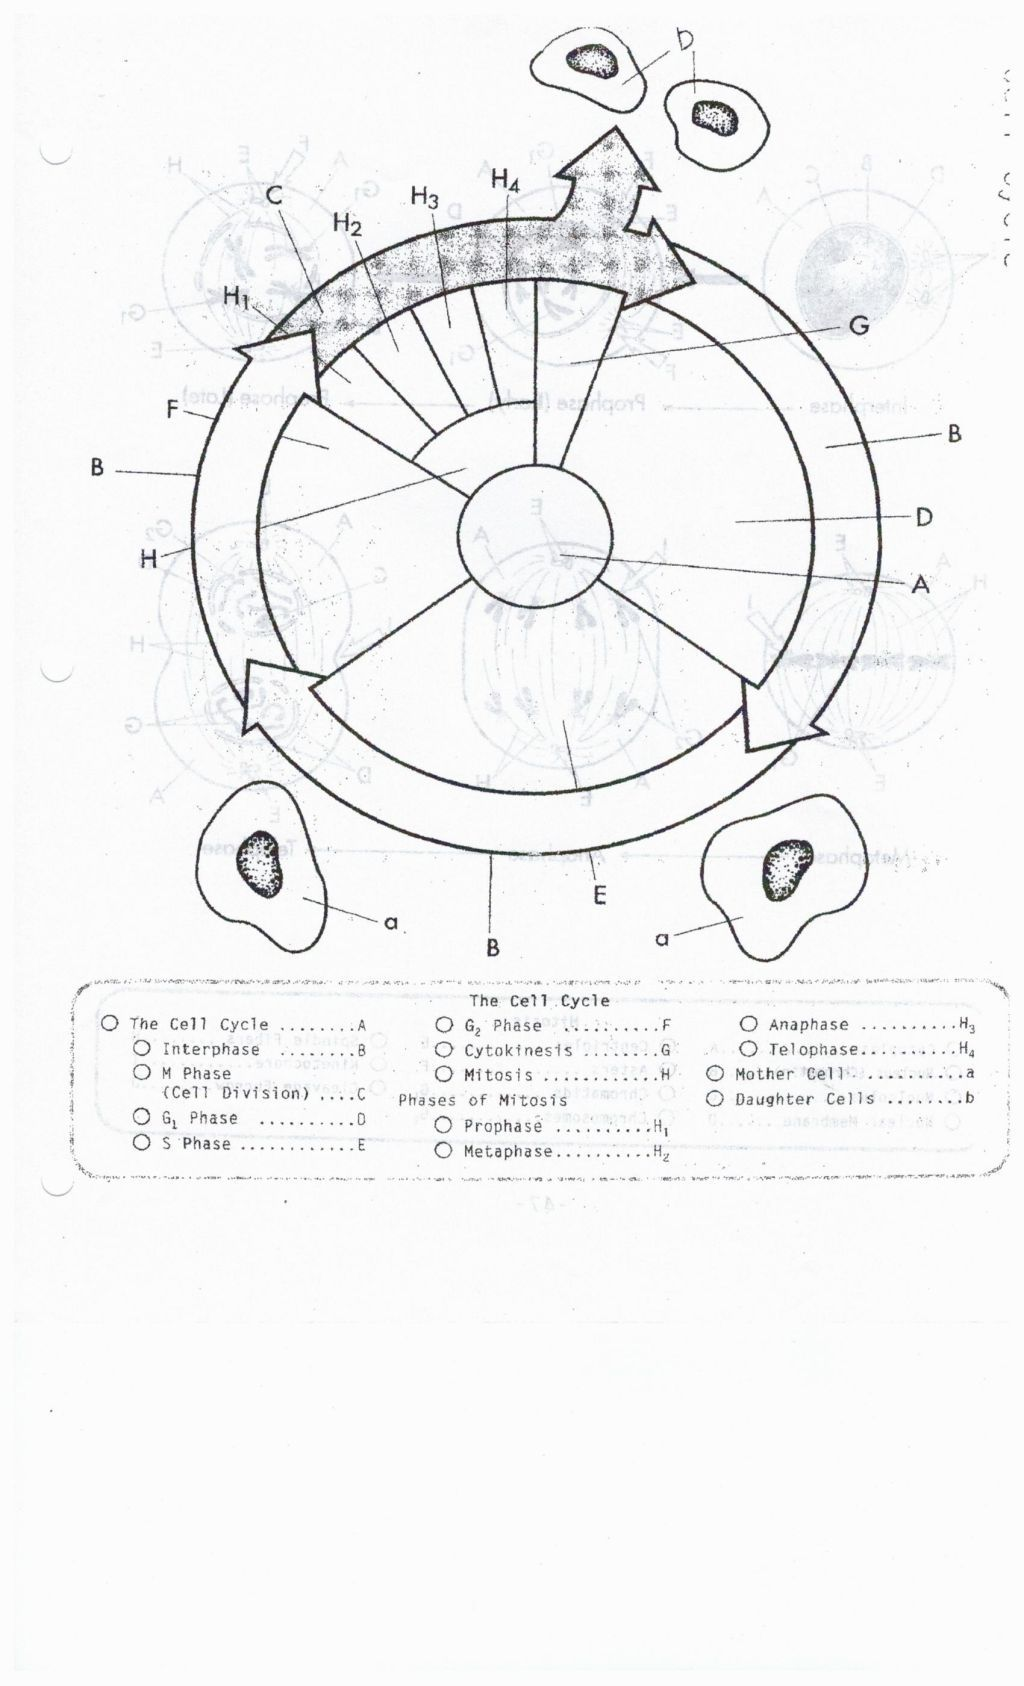 The Cell Cycle Coloring Worksheet Answers